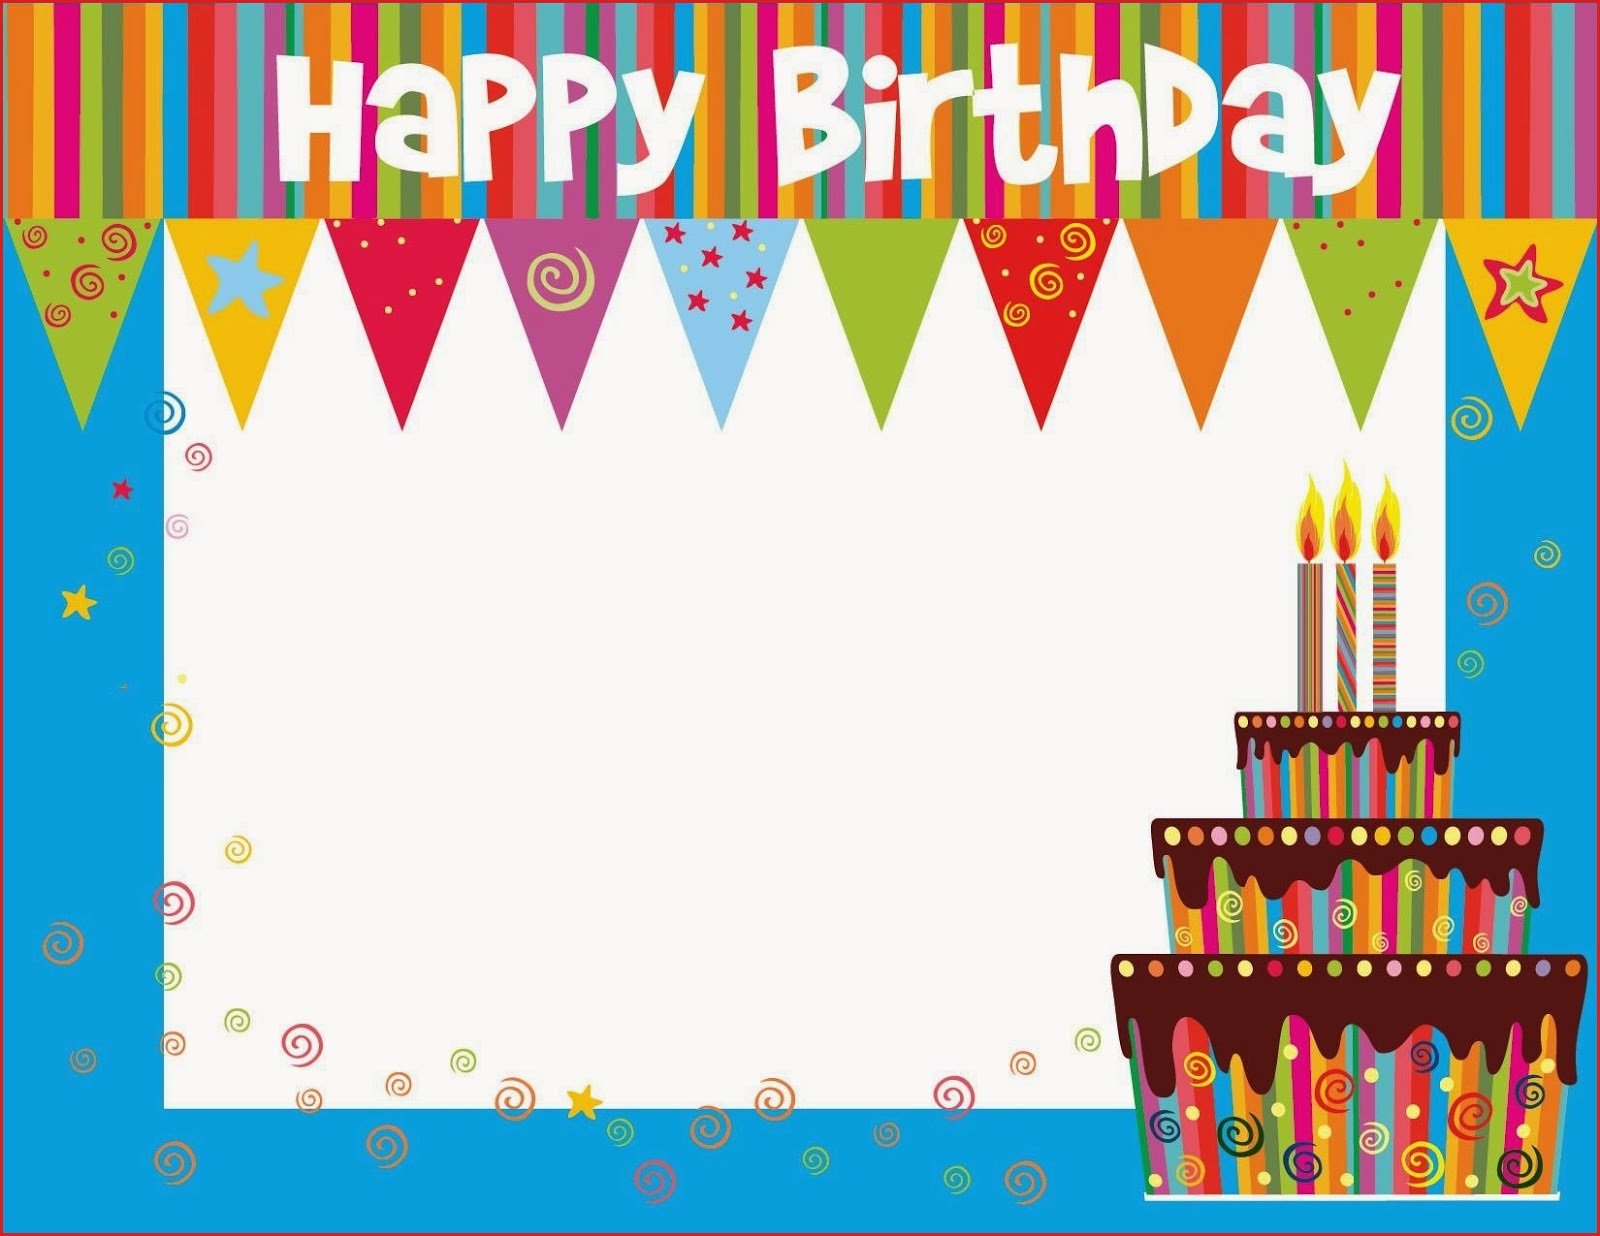 Create Birthday Cards Online Free Printable Birthday Cards Ideas - Free Printable Cards Online